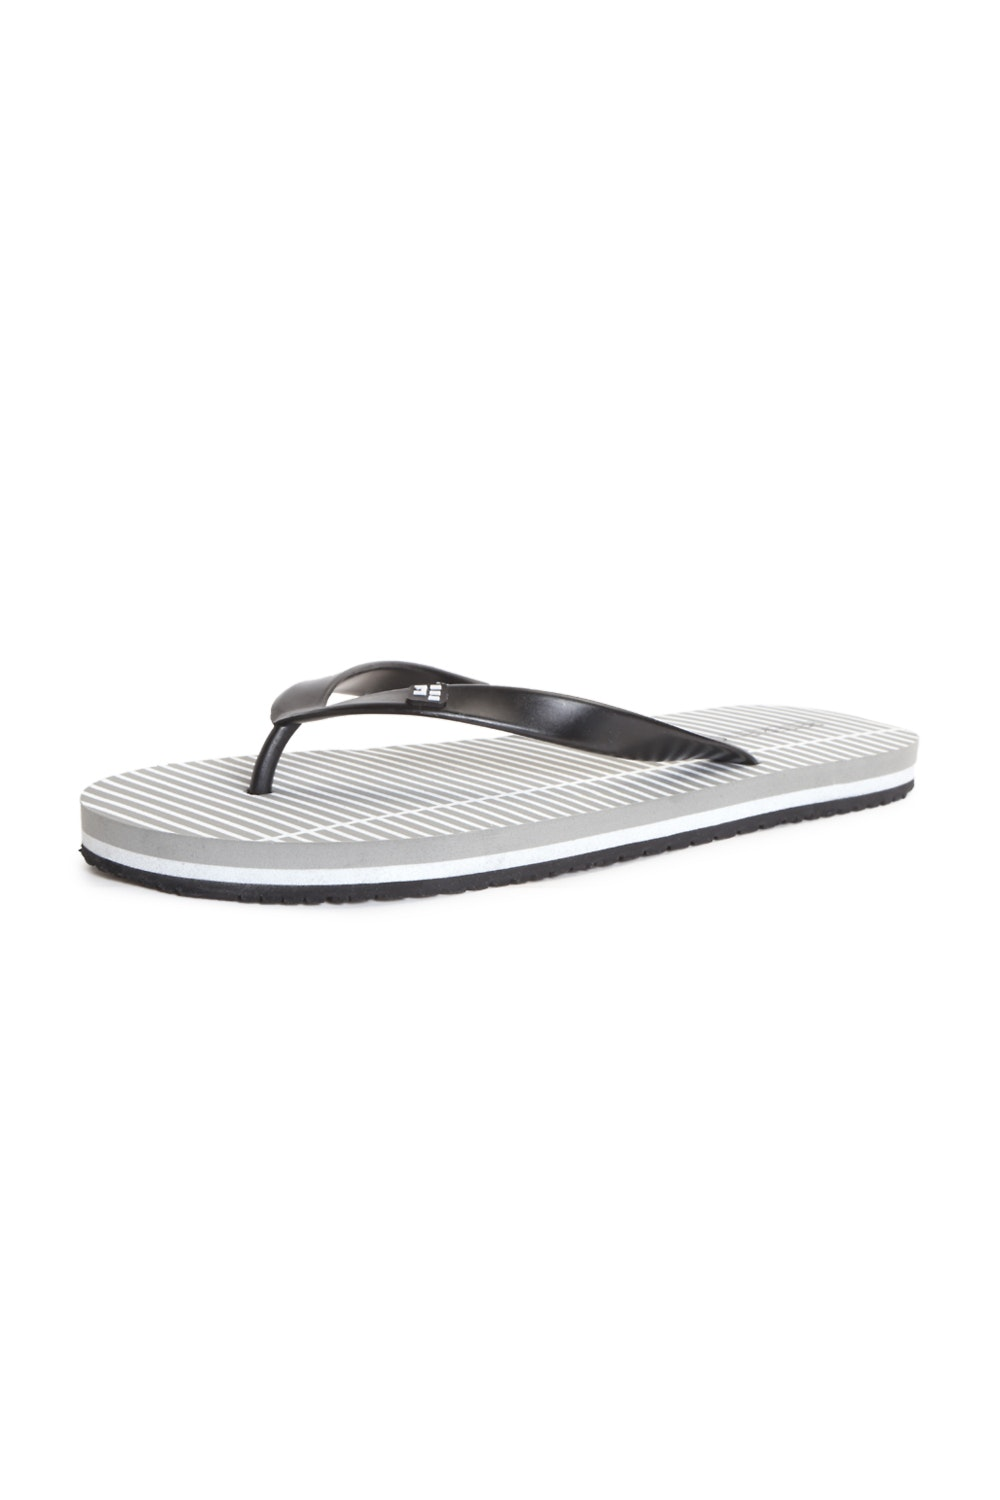 Womens Express Black Cushioned Flip Flops Sandals NWT Size 8